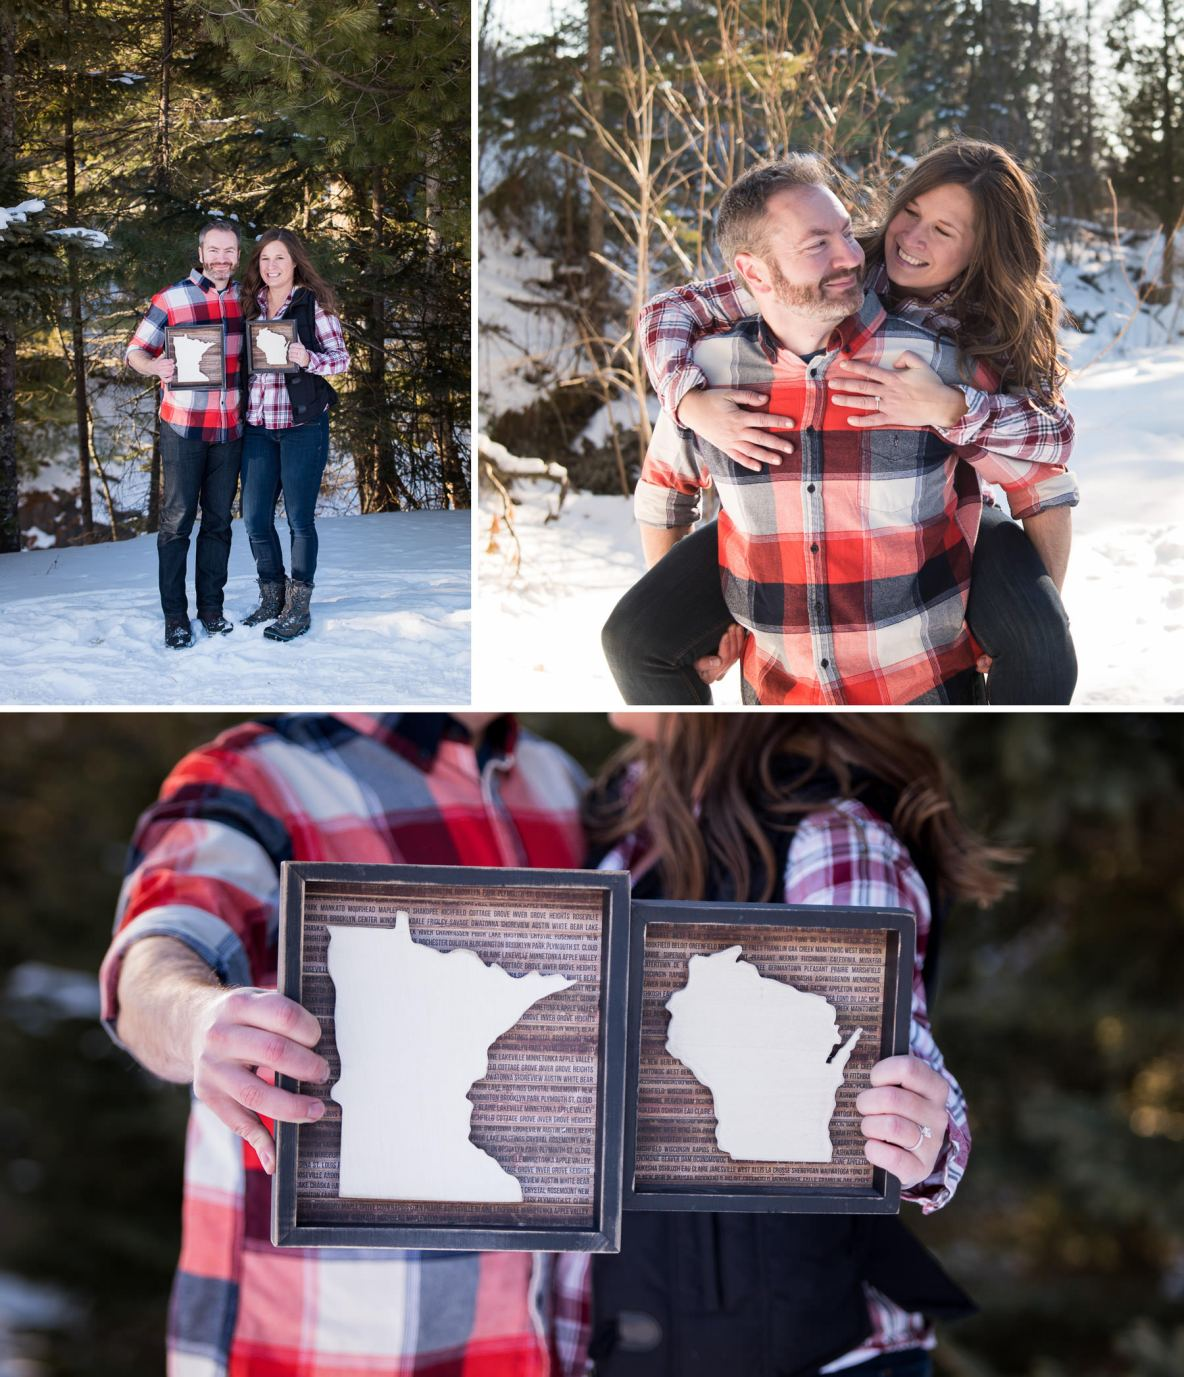 Engaged couple in snowy landscape wearing matching flannels.